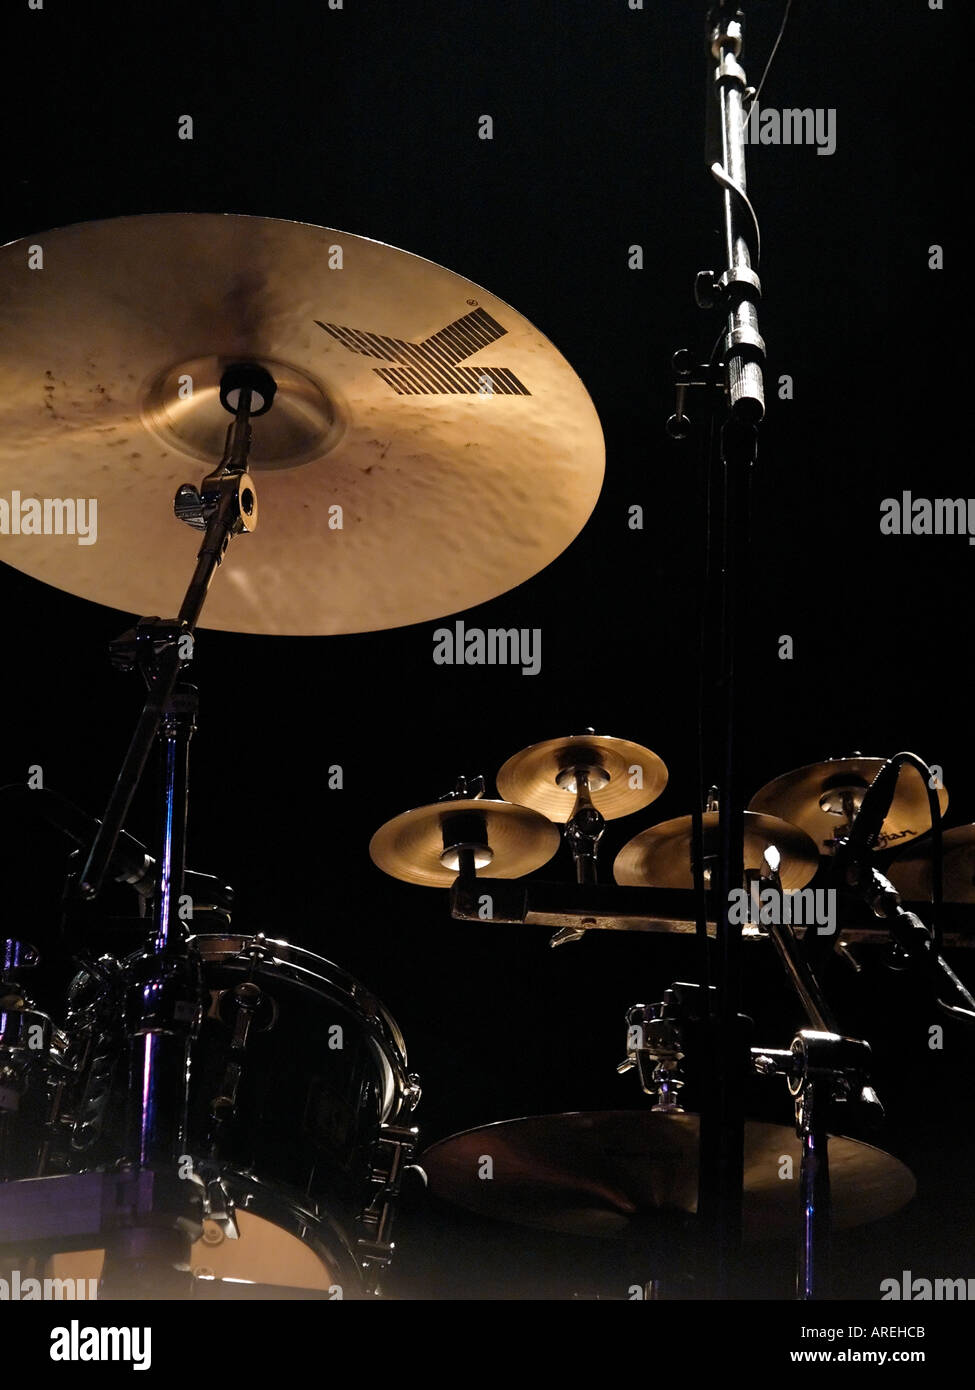 Detail view of drum set on stage before a concert - Stock Image